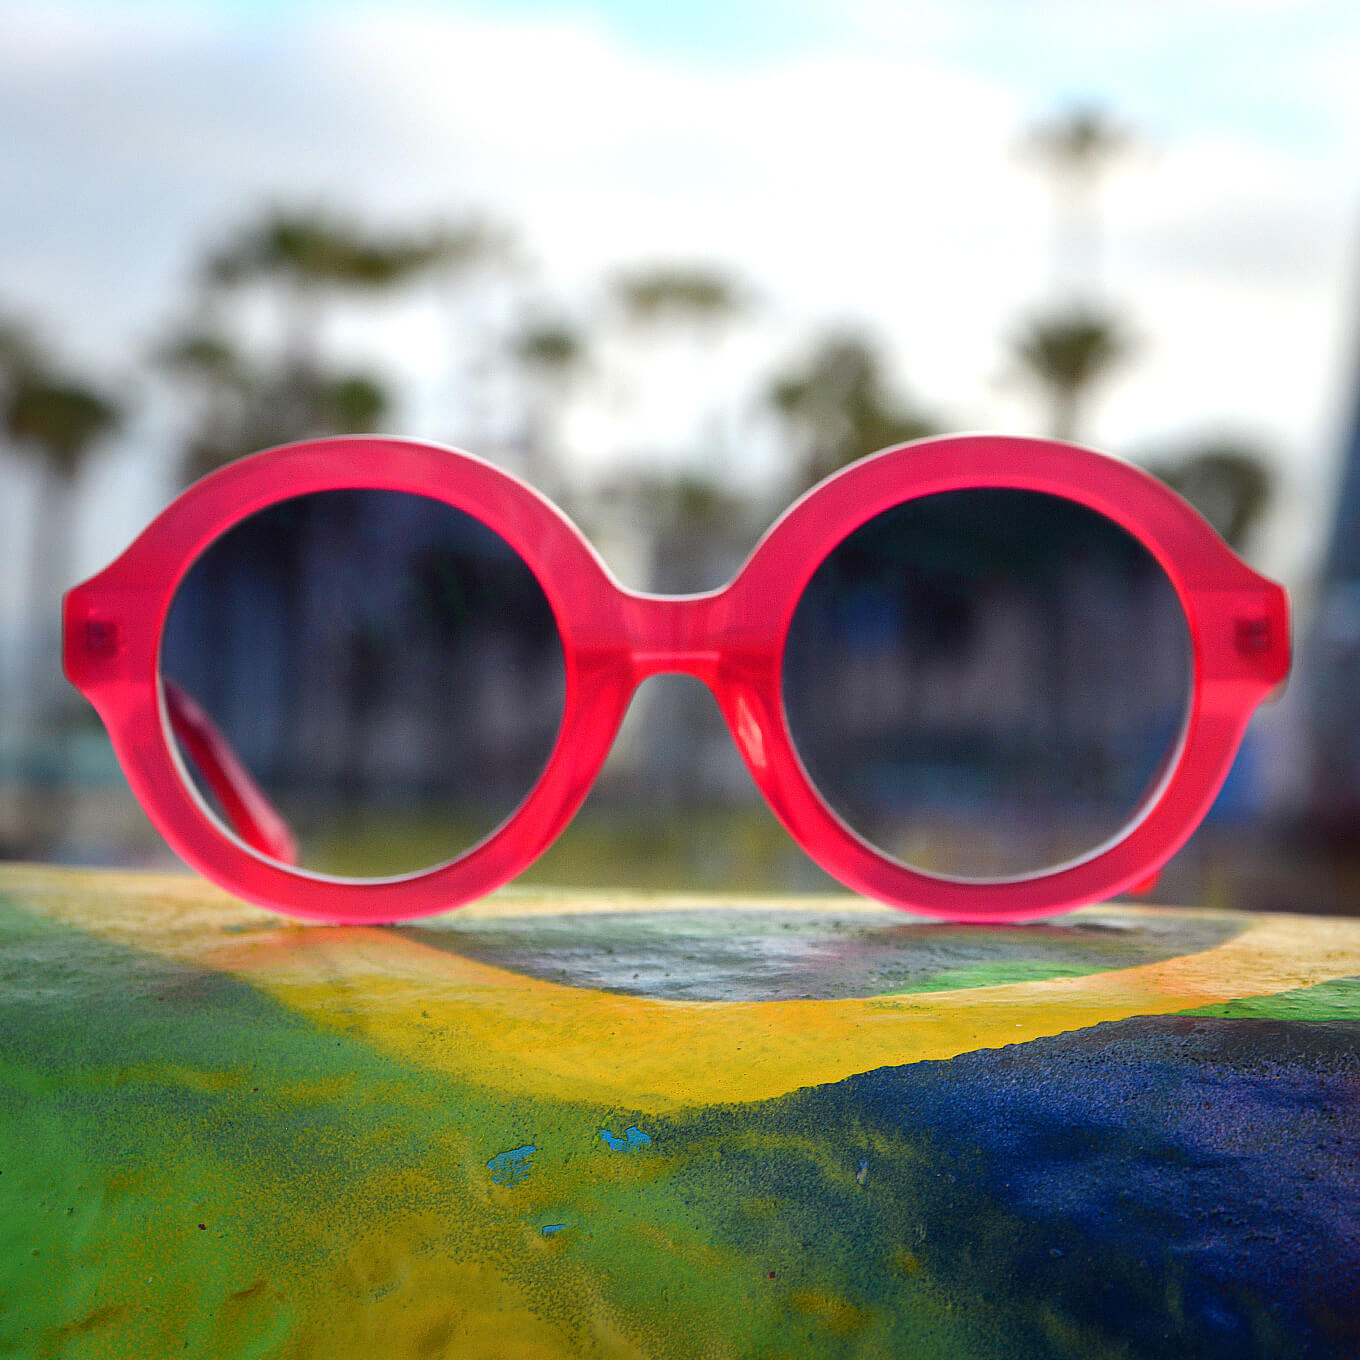 Pico round acetate sunglasses in vibrant pink with gradient gray lenses.